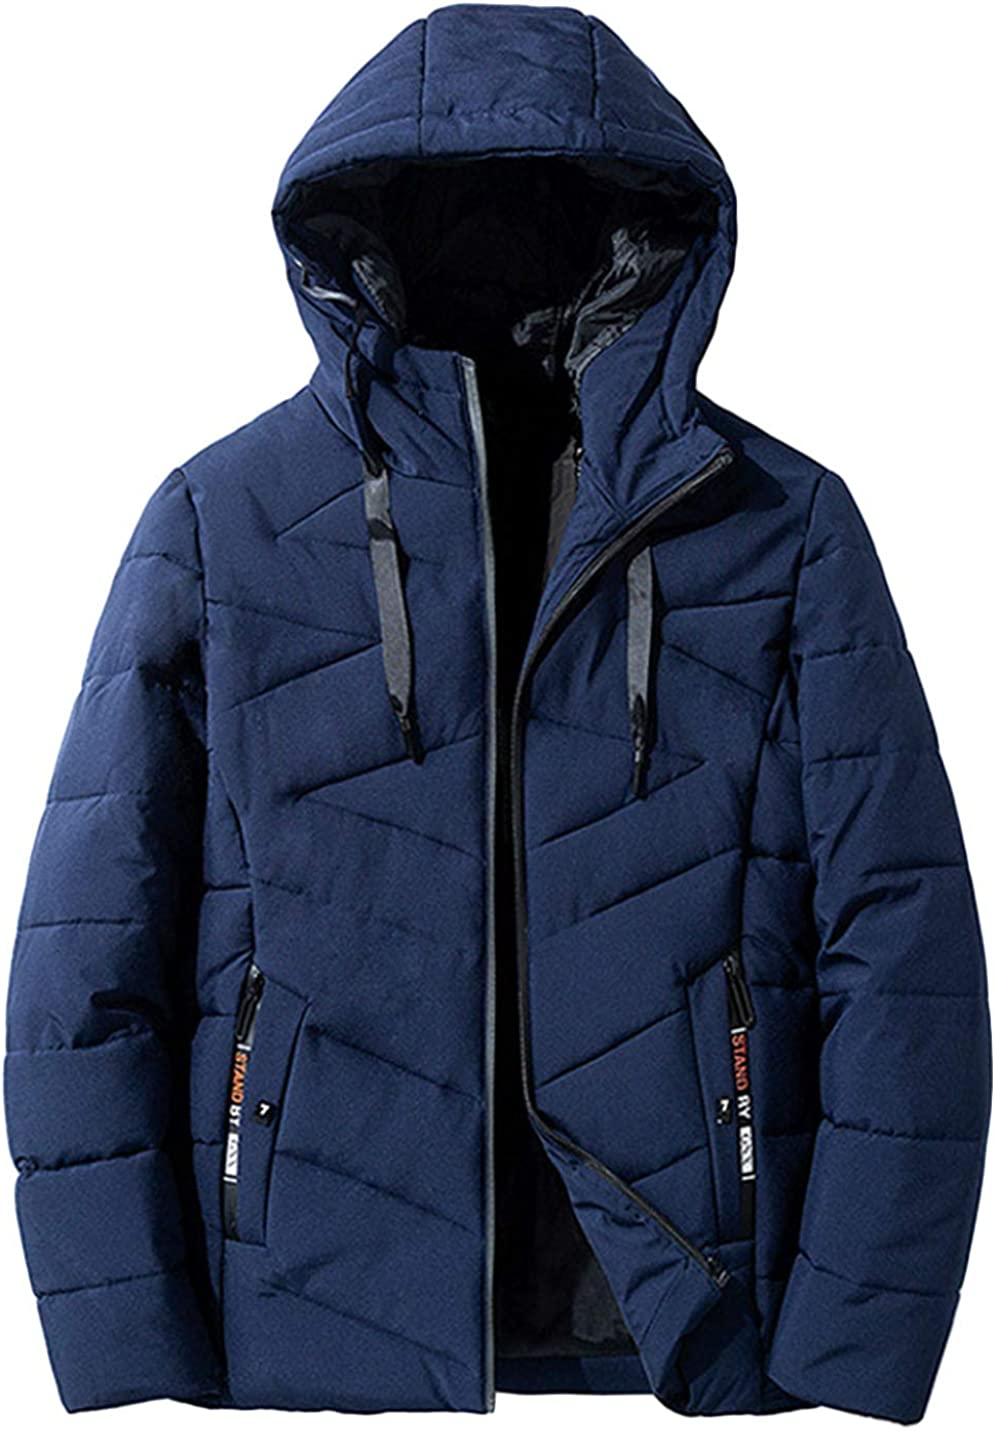 HaoMay Men's Winter Coat Hooded Cotton-Padded Quilted Puffer Jacket